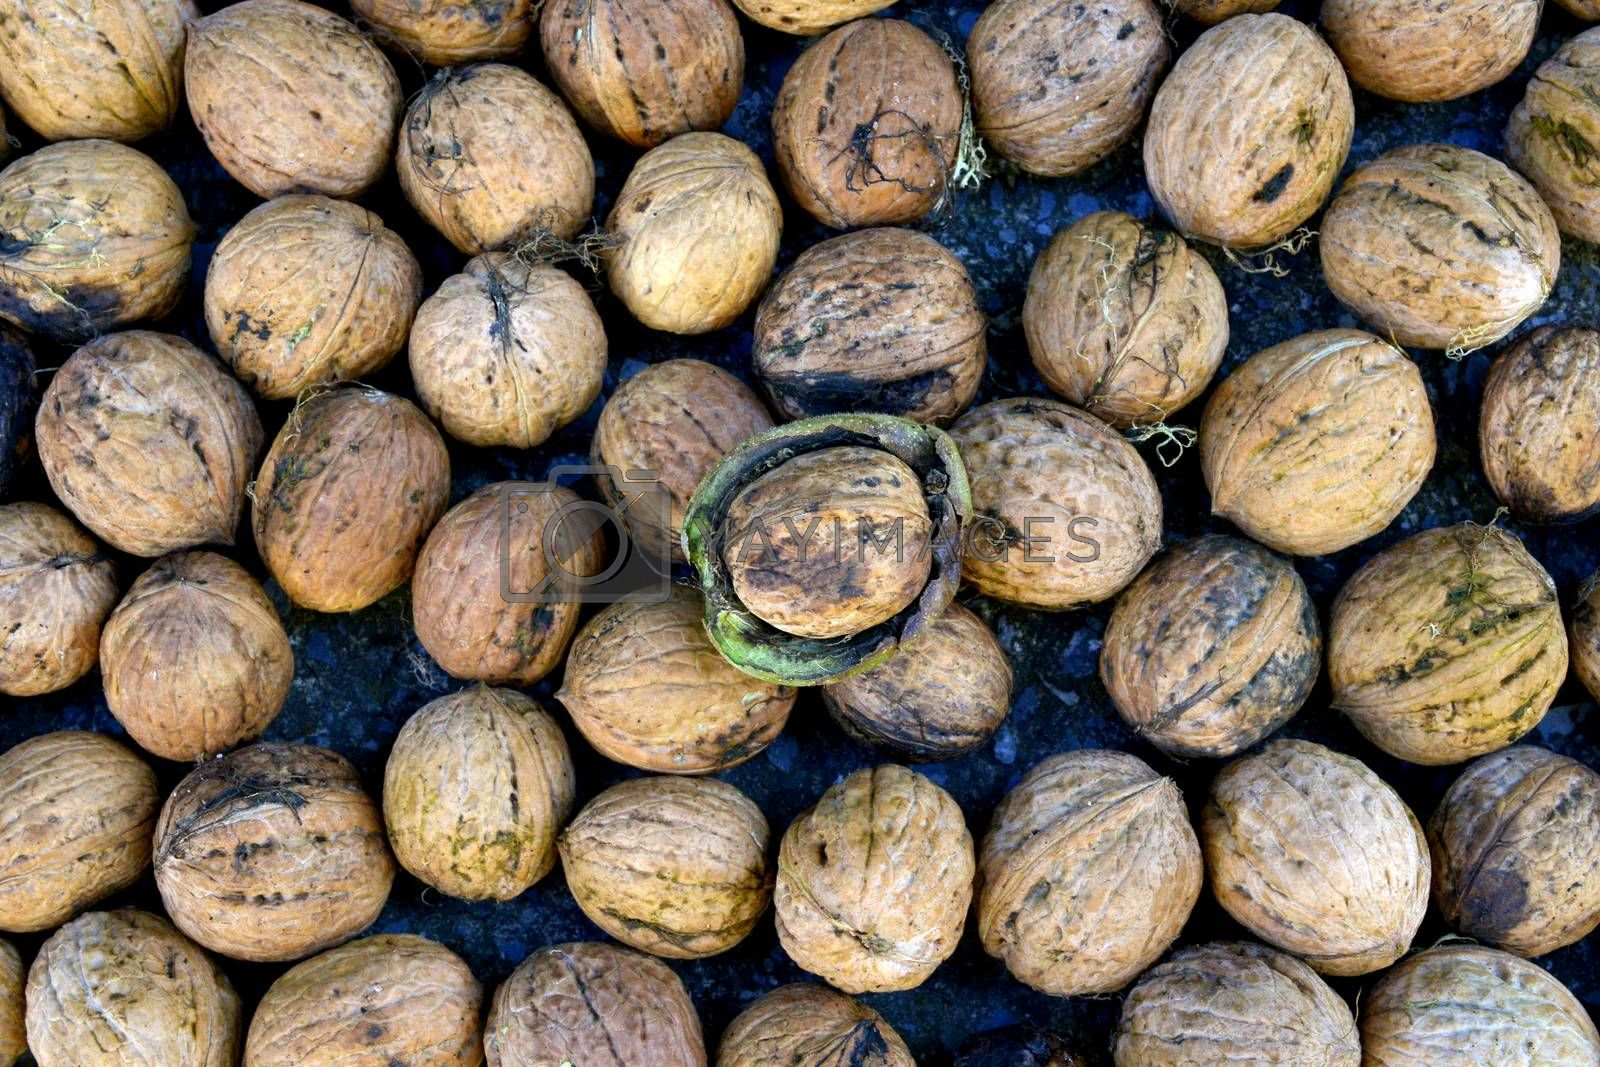 image of organic nuts, autumn concept image